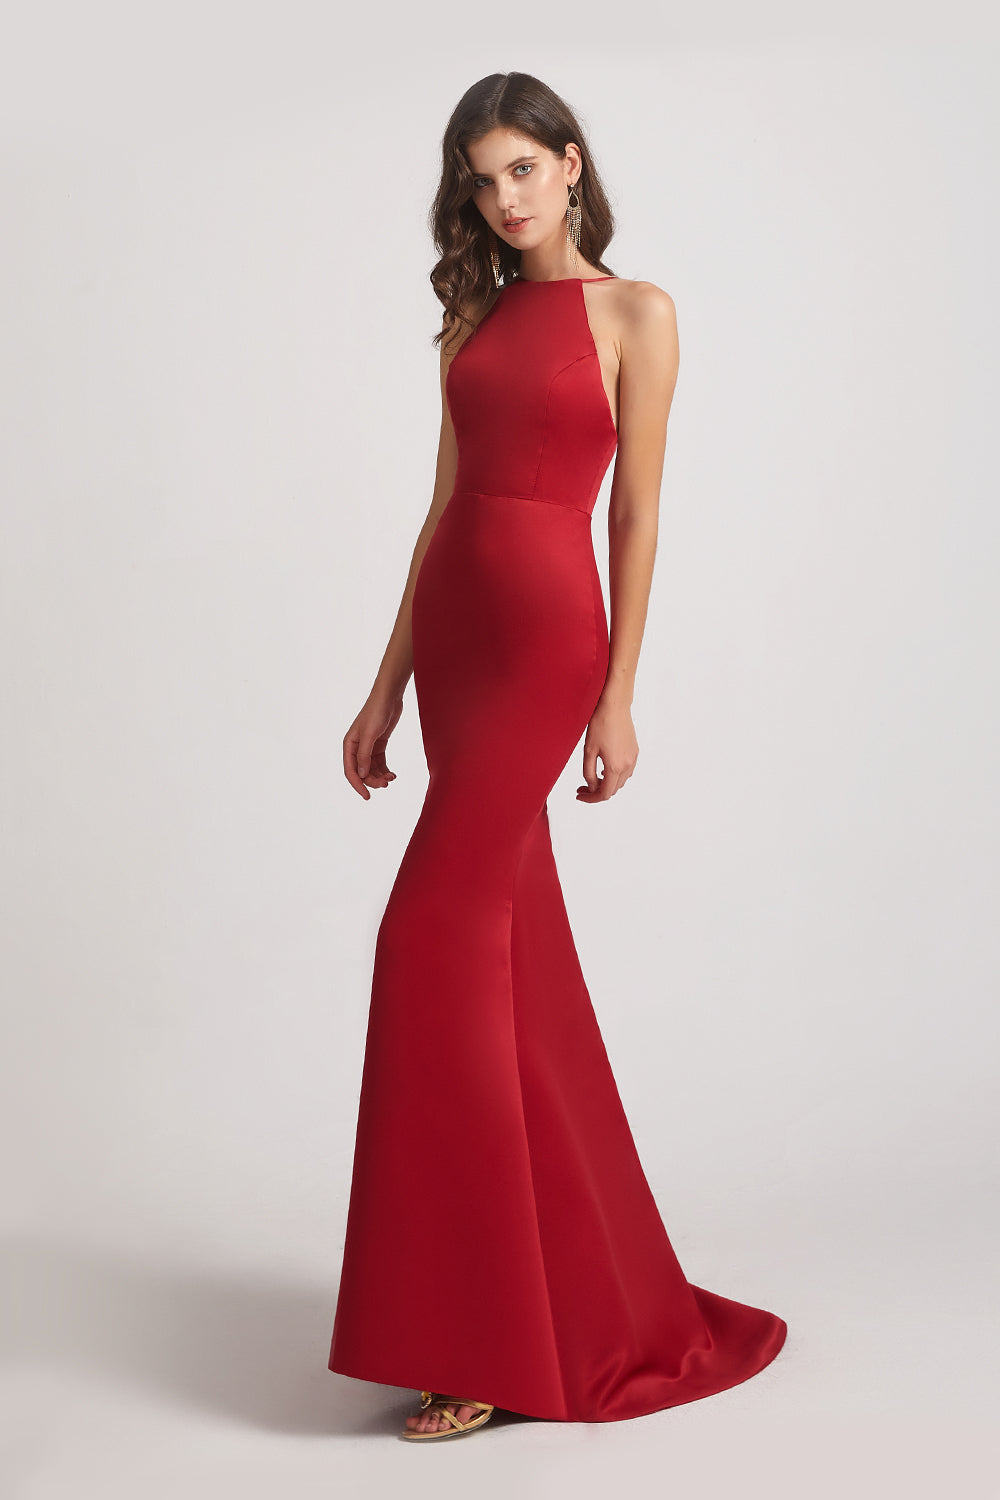 sheath red satin bridesmaids dresses